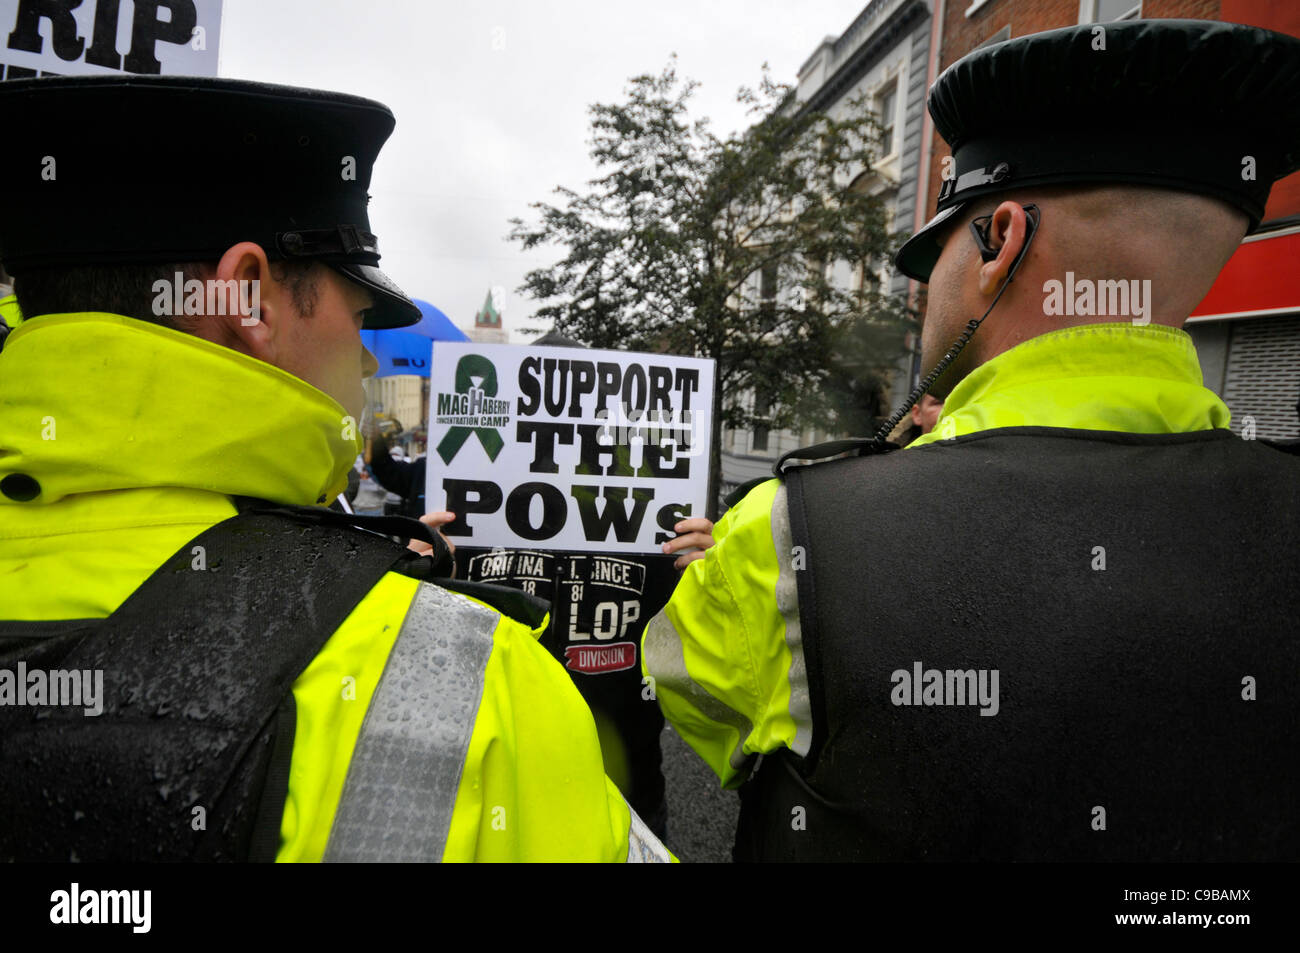 Dissident republican protesting in Londonderry for reform of prison conditions for Real IRA prisoners in Northern - Stock Image